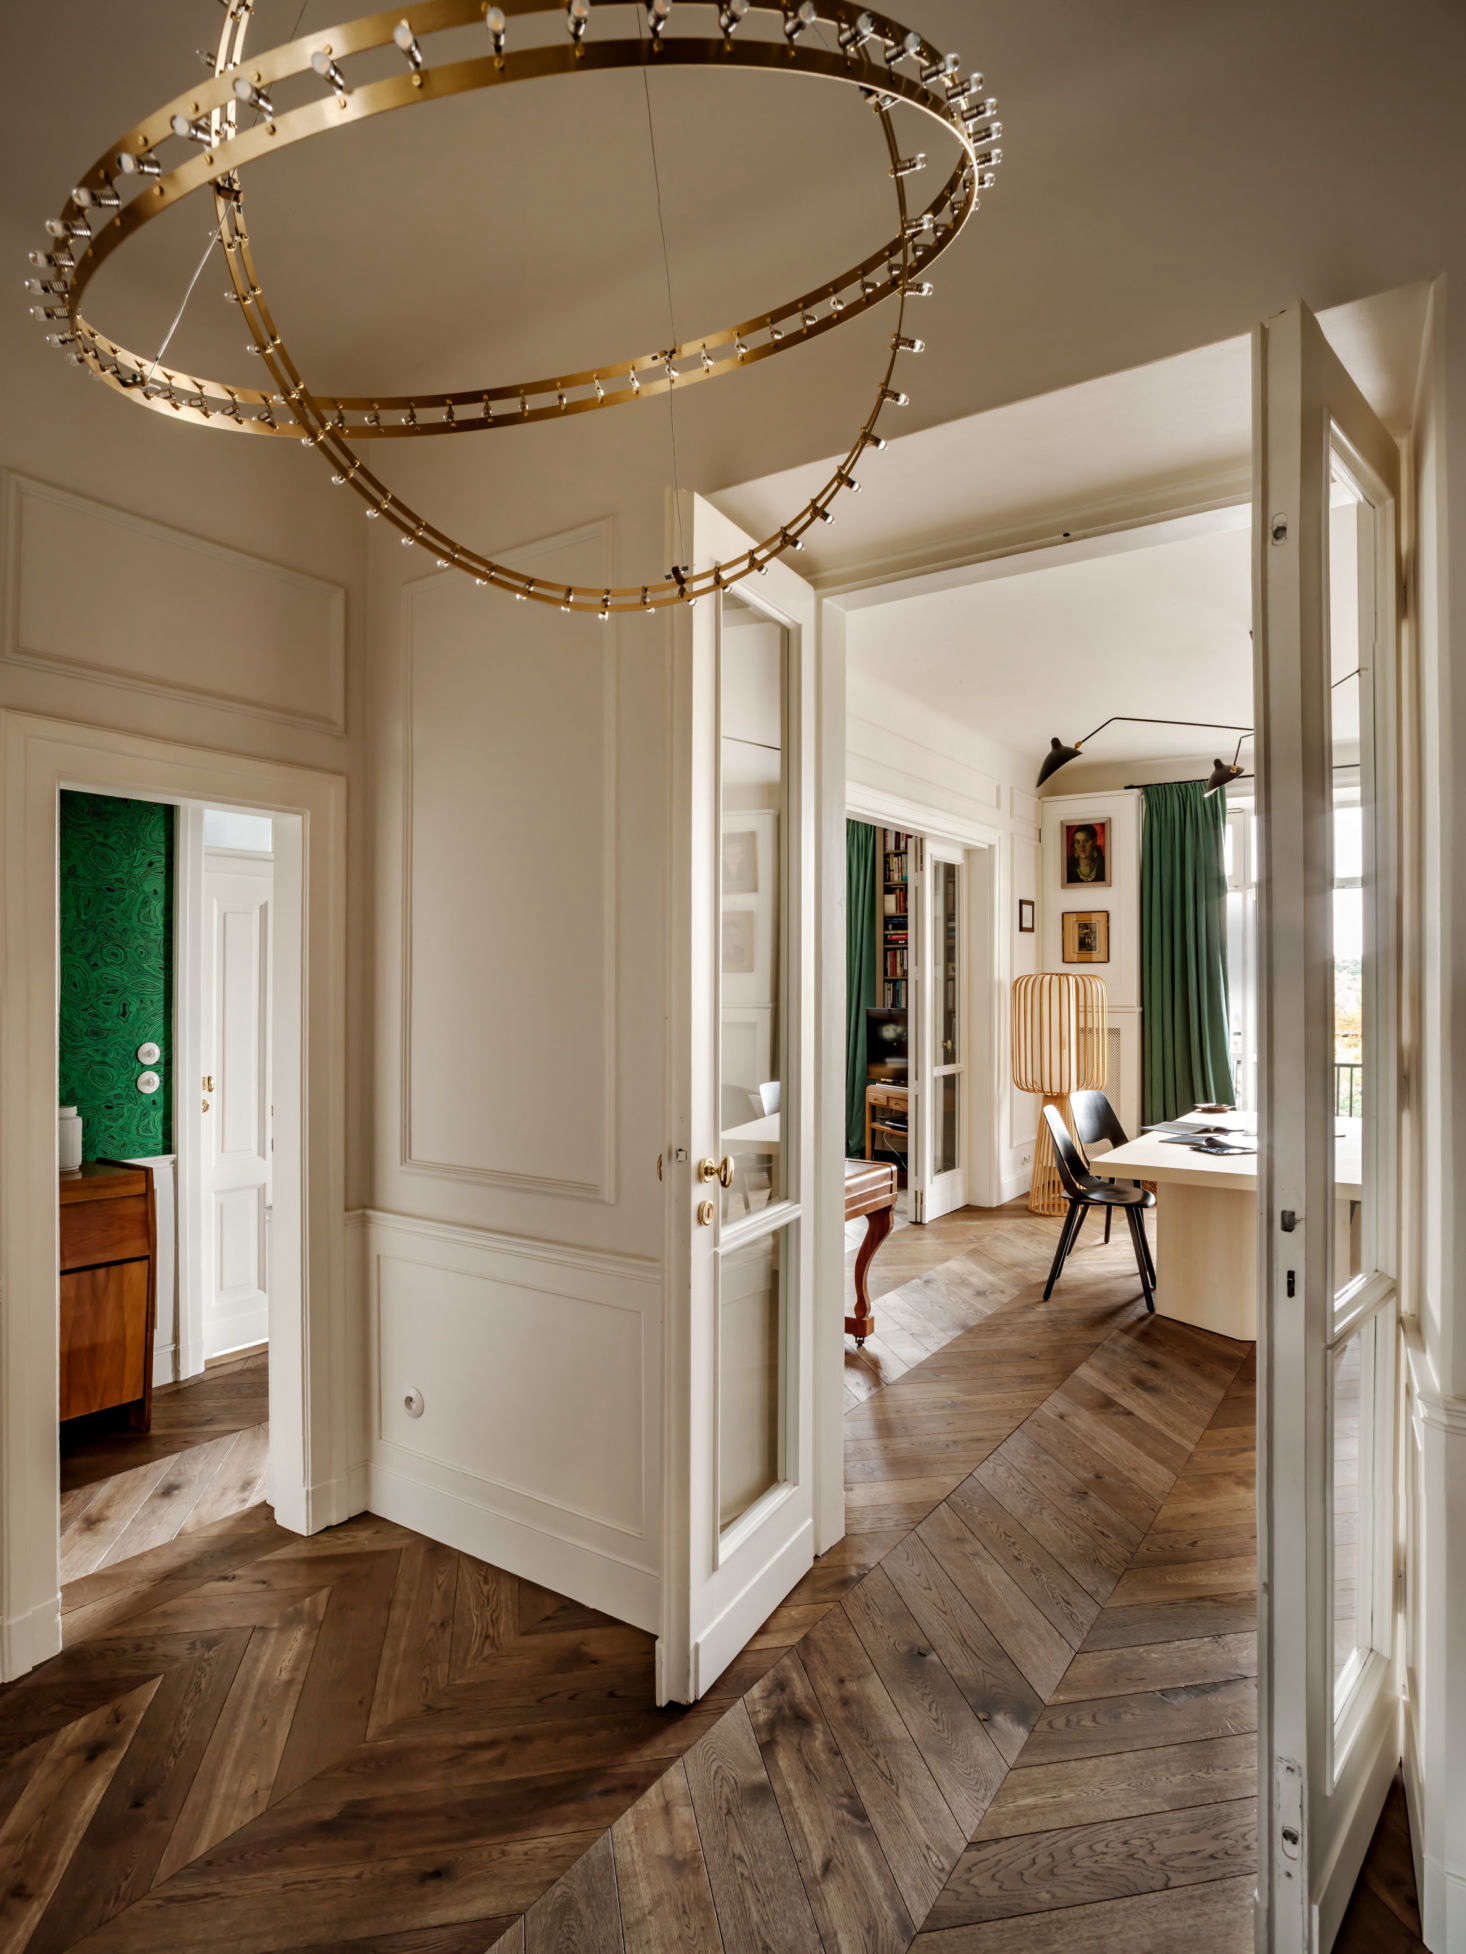 A peek, from the entry, into the dining room. Before Chrapka even thinks about the interior design, she focuses on the layout and fundamentals. &#8